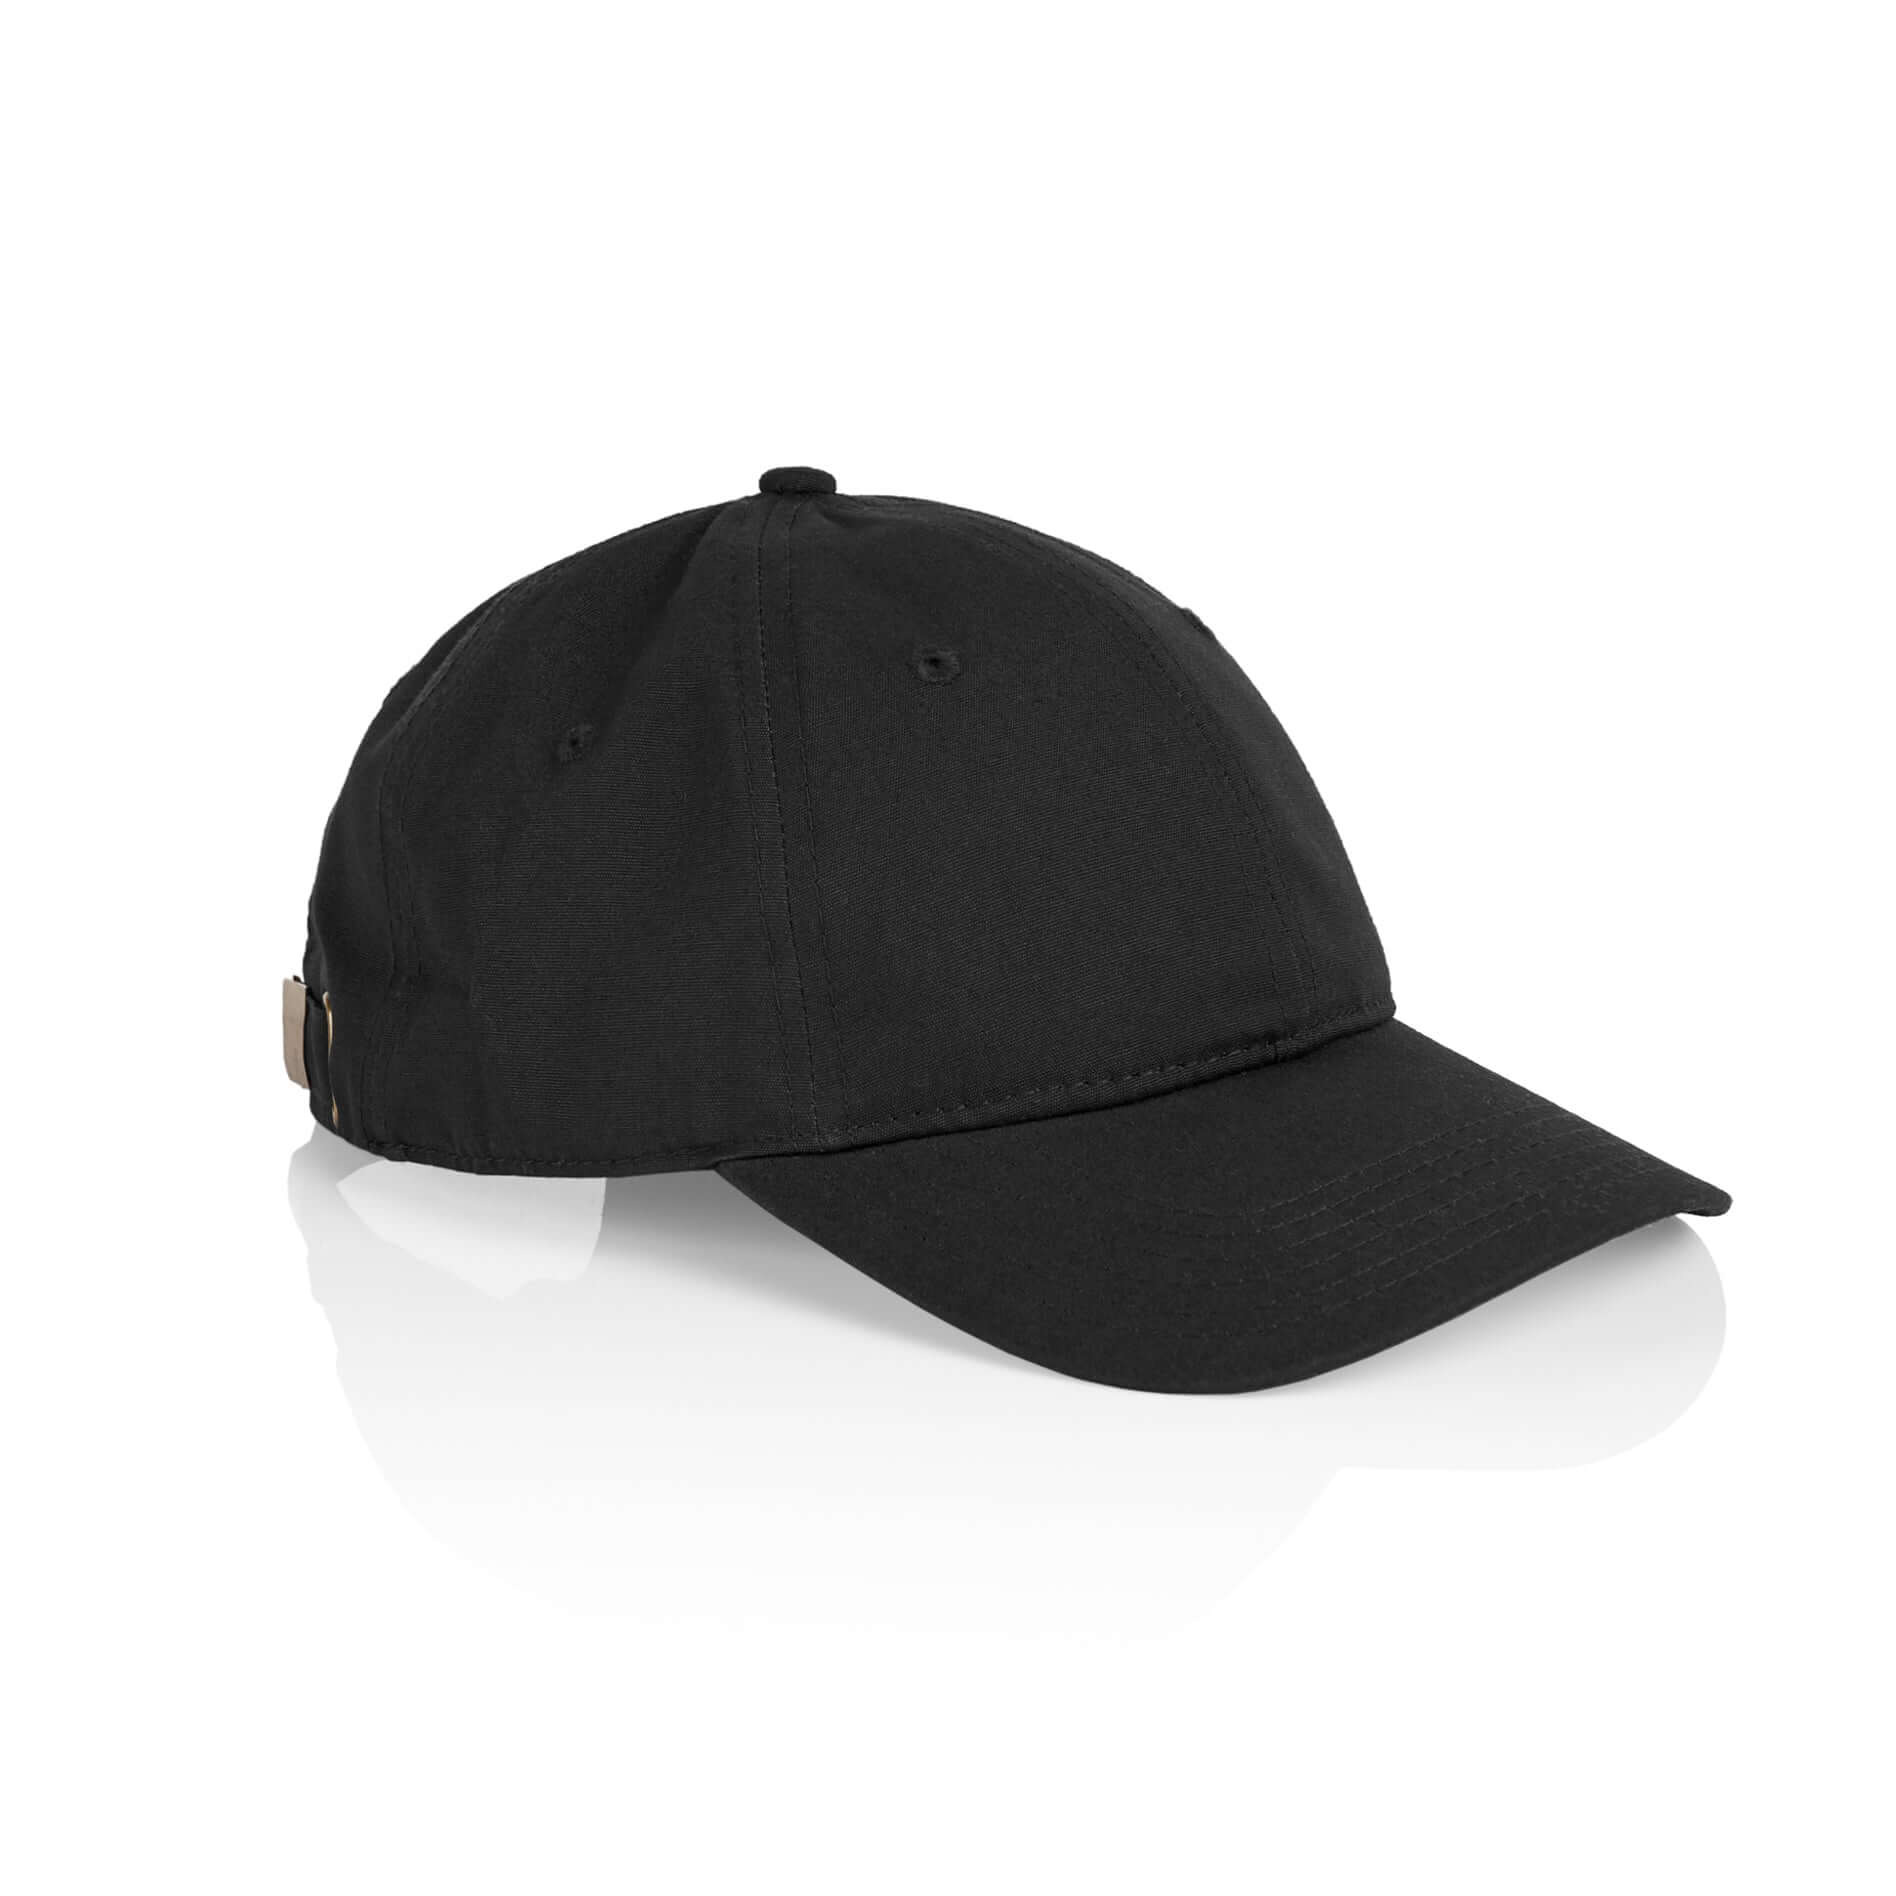 AS Colour DAVIE SIX PANEL CAP - Black